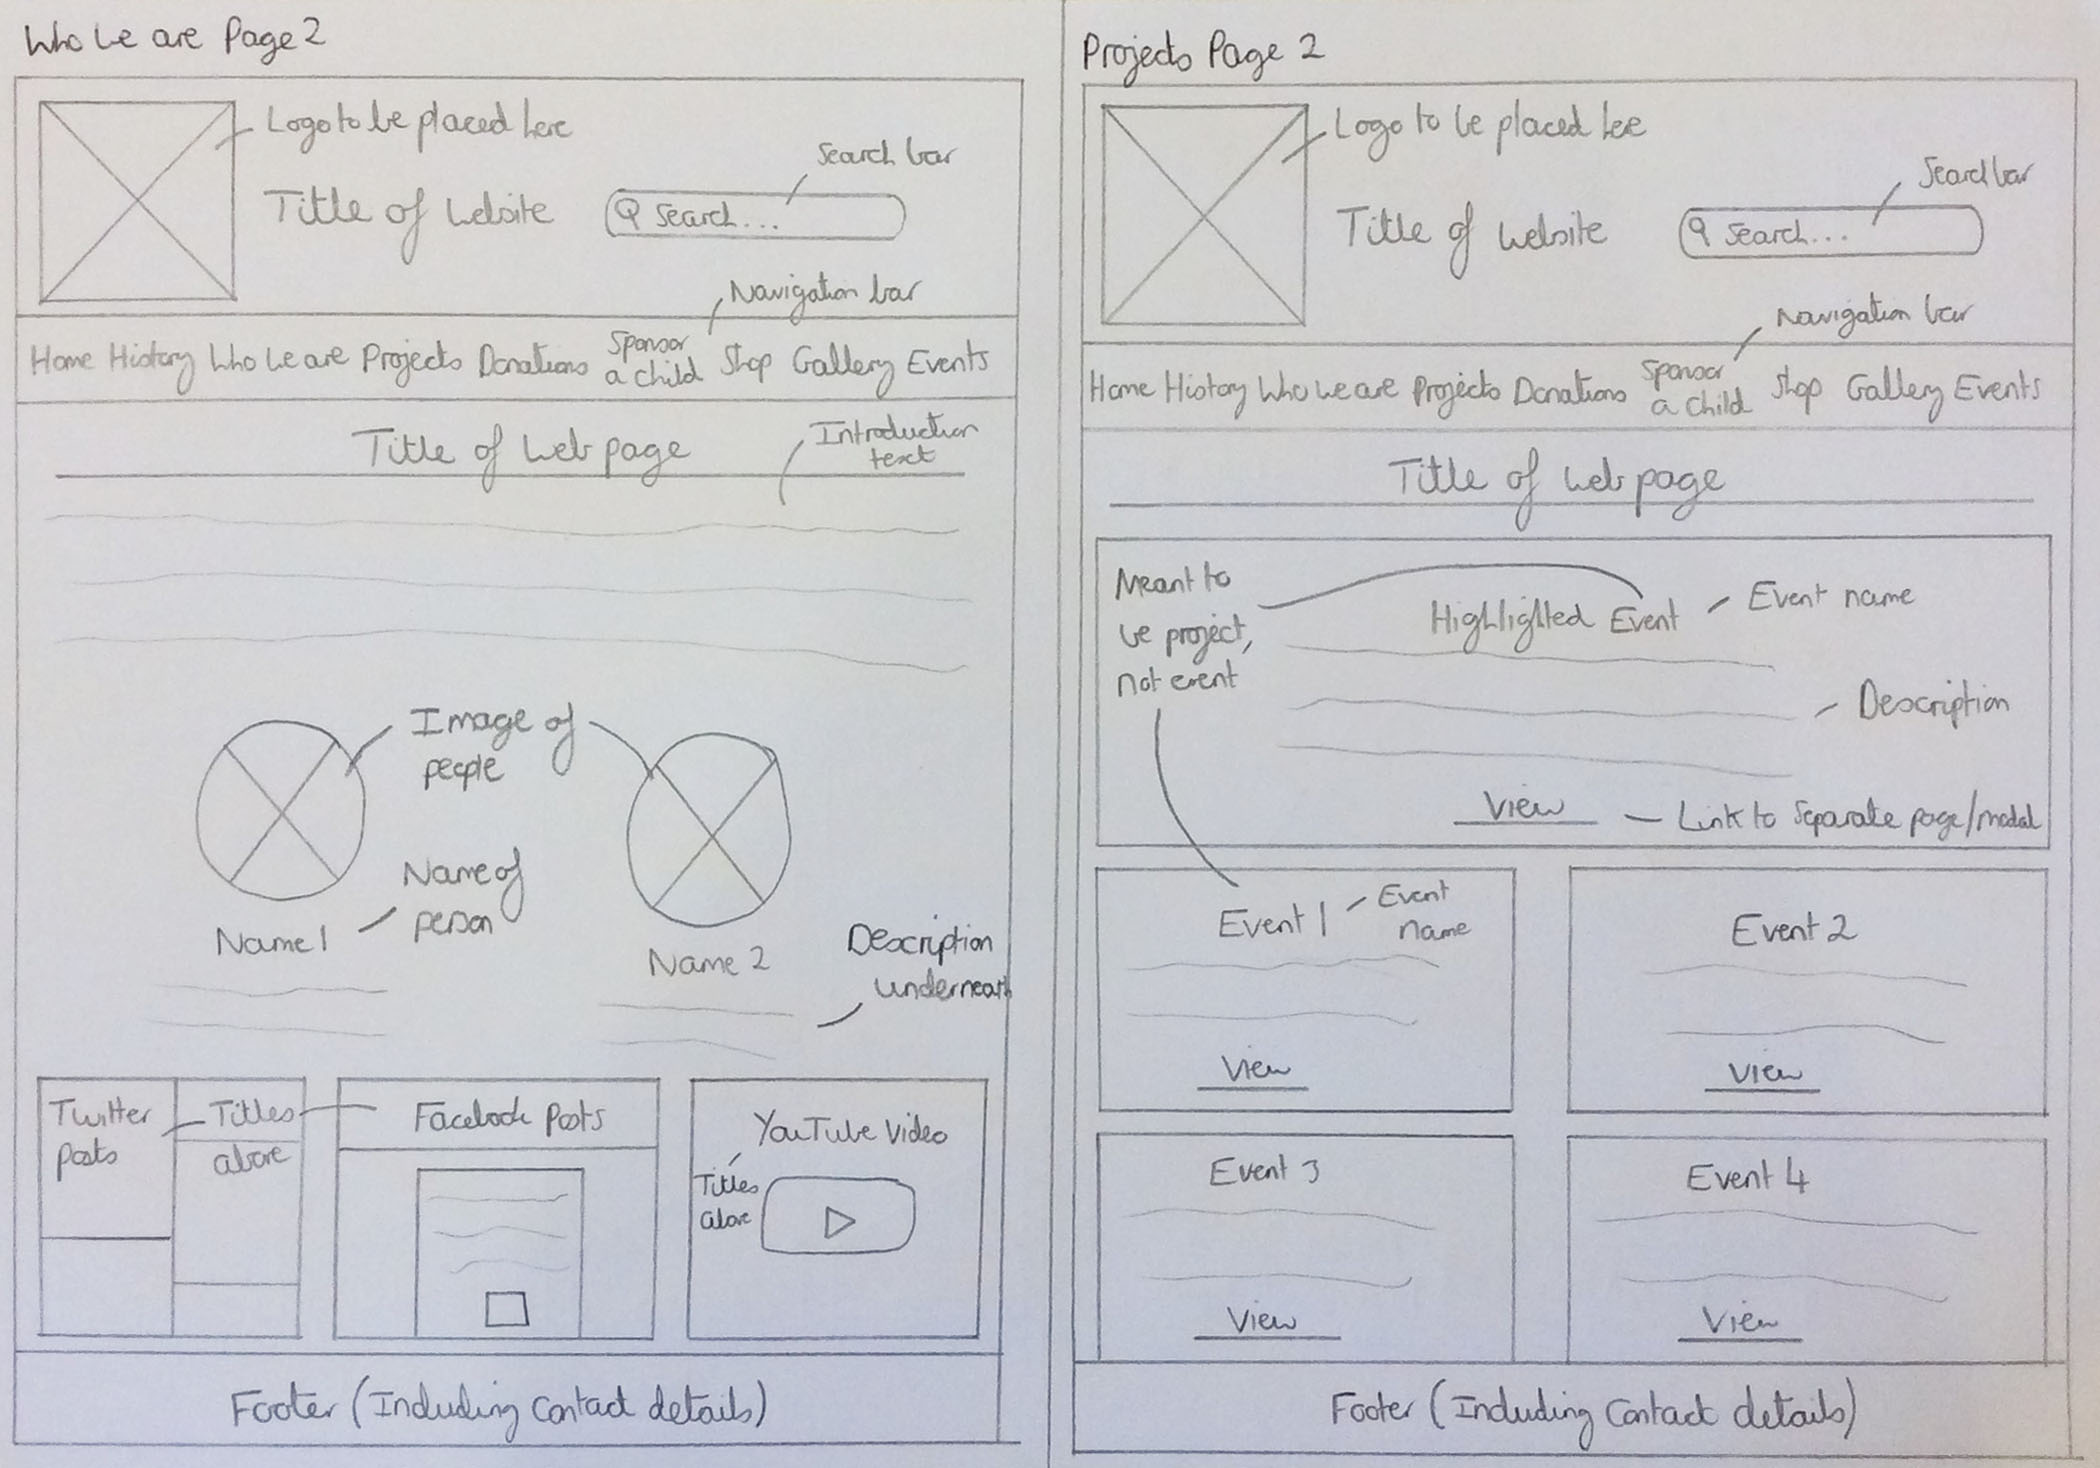 The Sketched 'Who We Are' and Projects Pages Wireframes